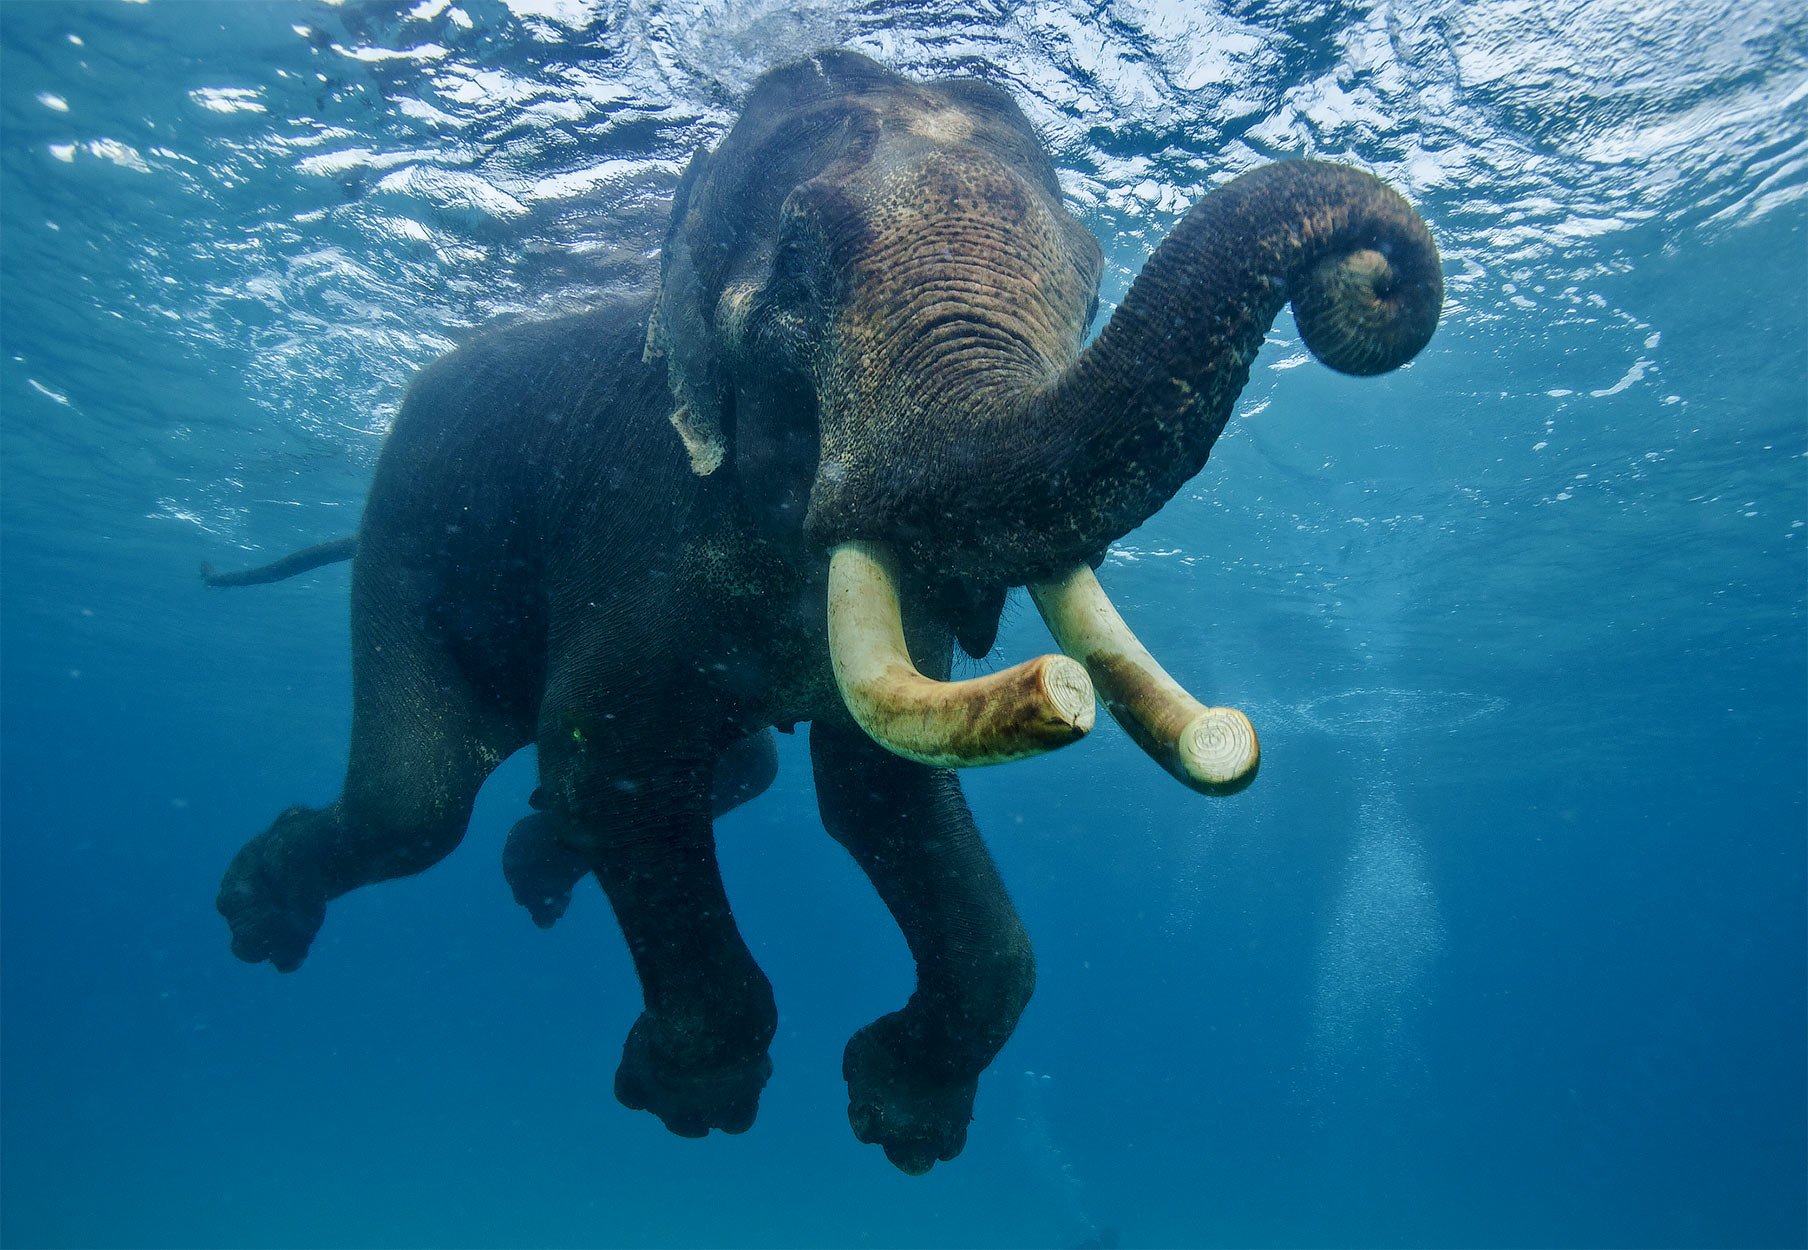 Swimming Elephants via Seal Superyachts India